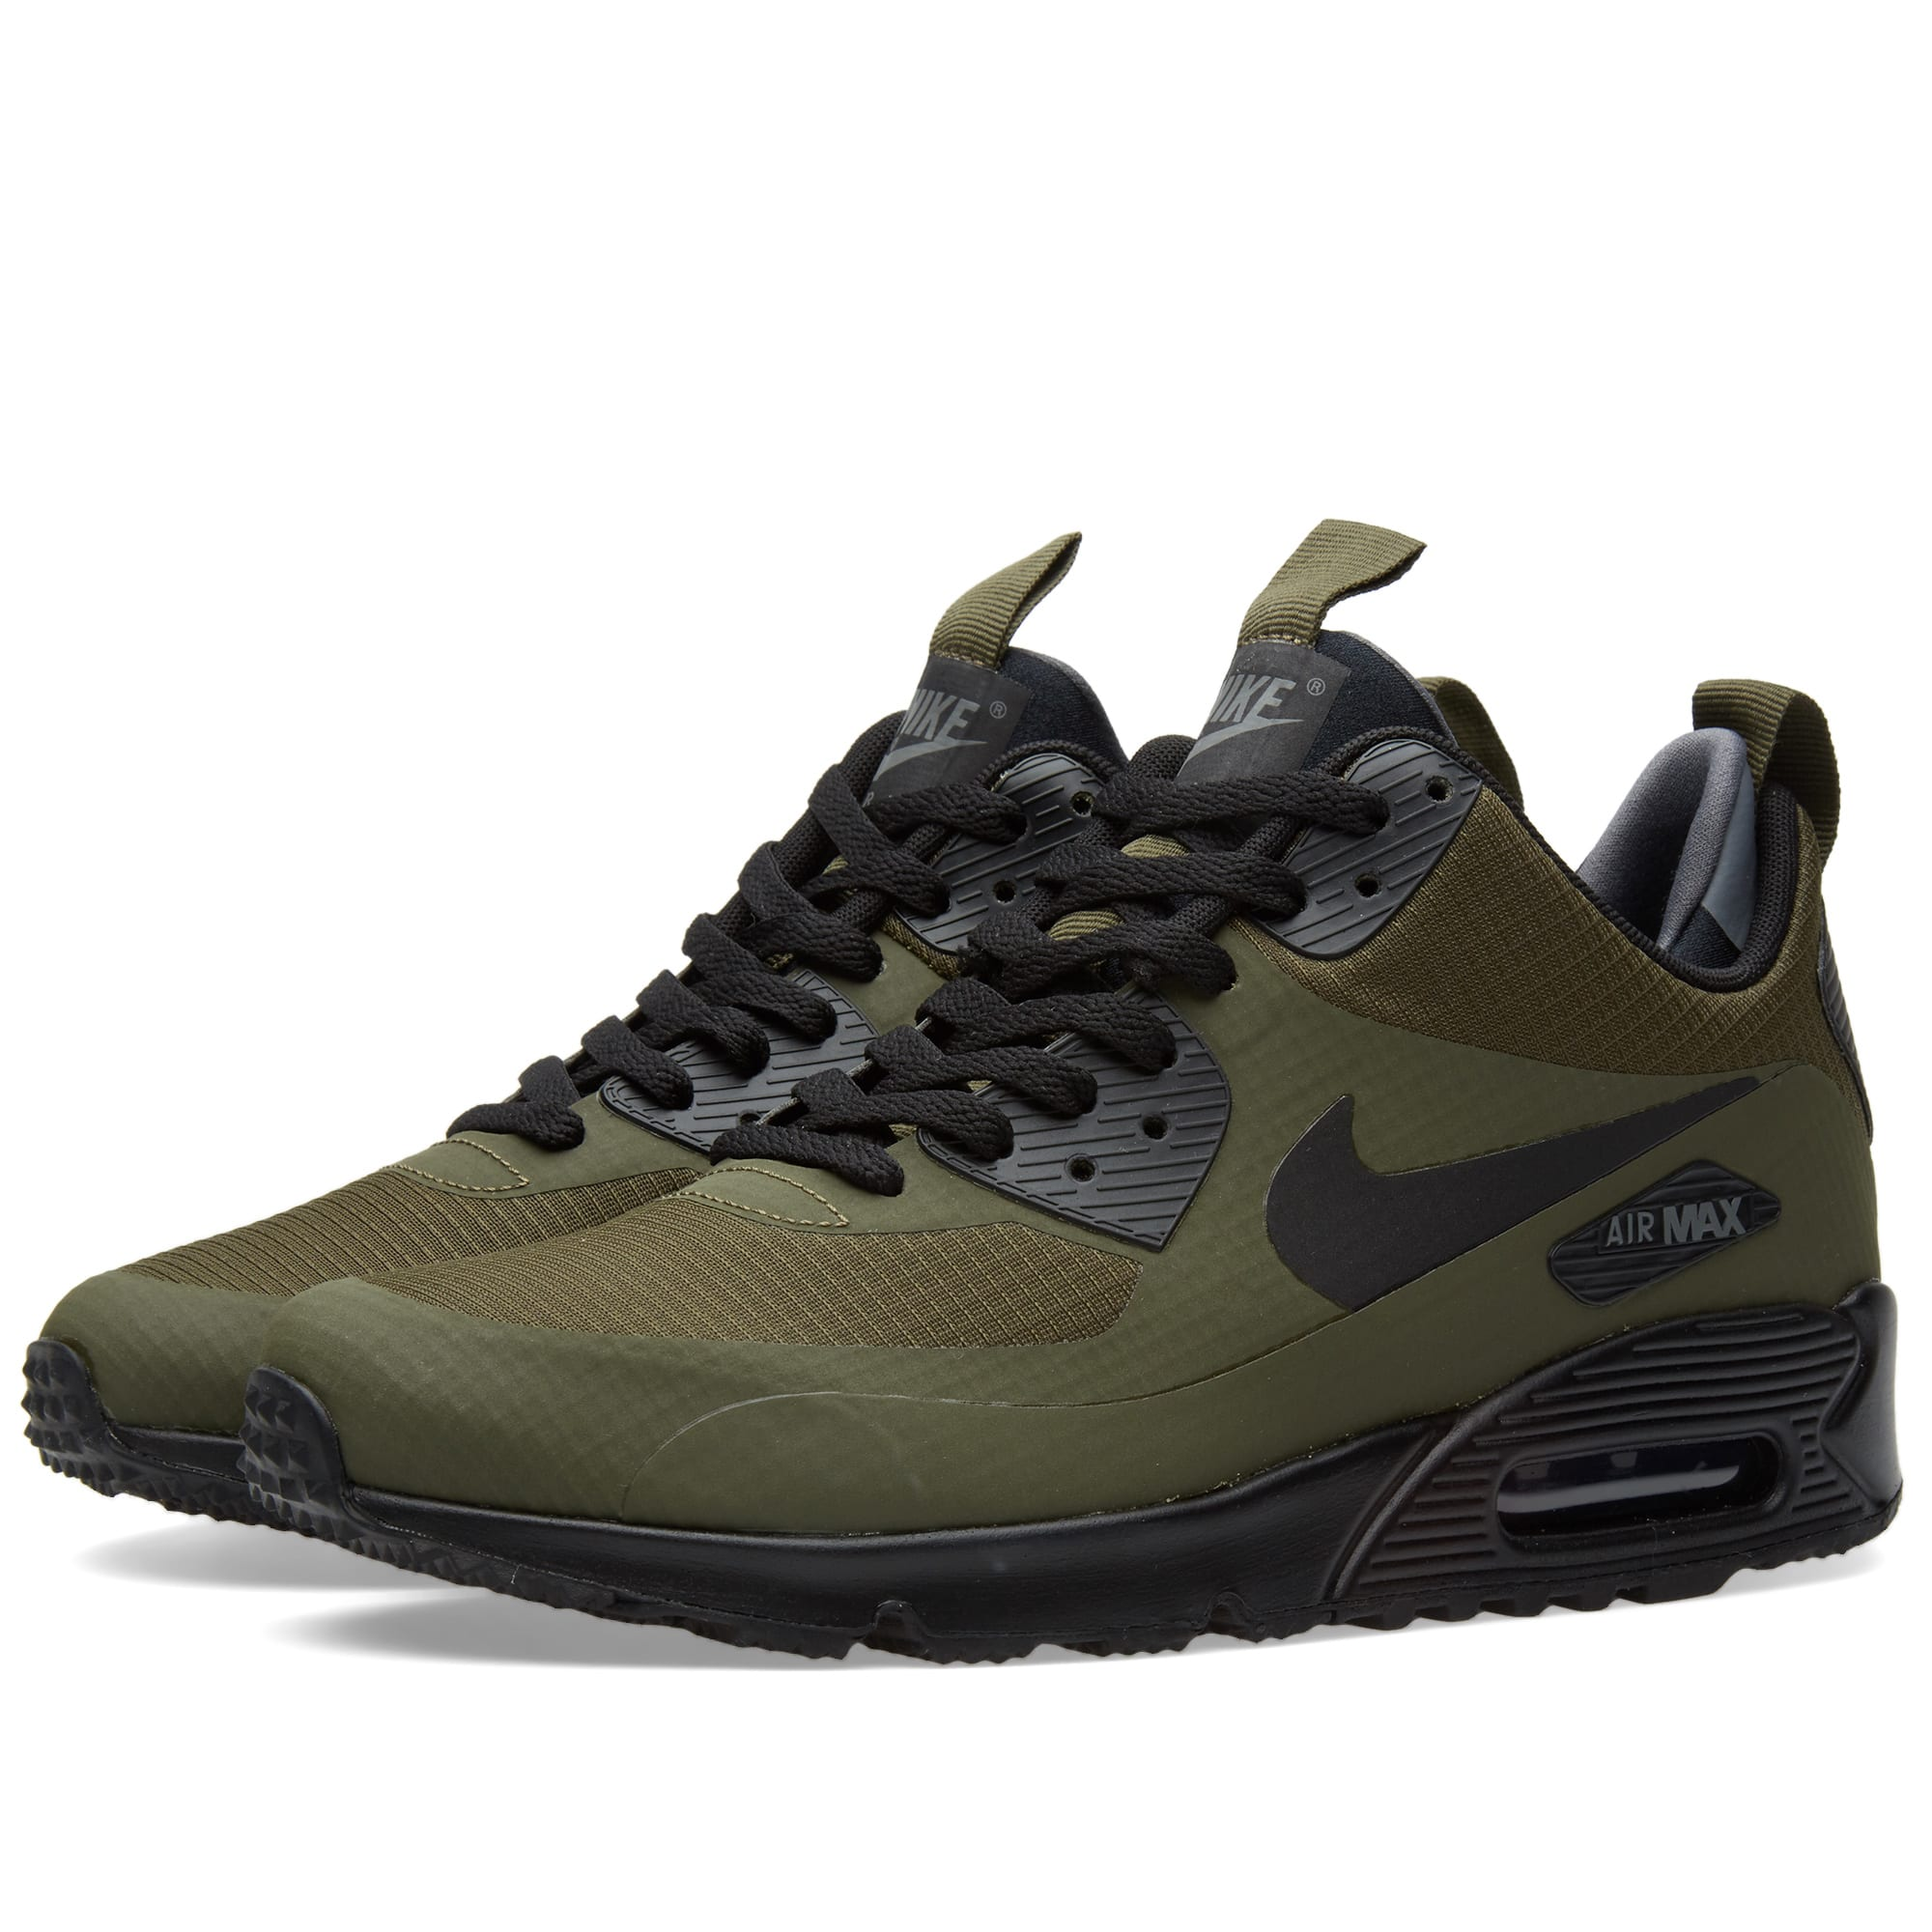 nike air max 90 mid winter dark loden black. Black Bedroom Furniture Sets. Home Design Ideas